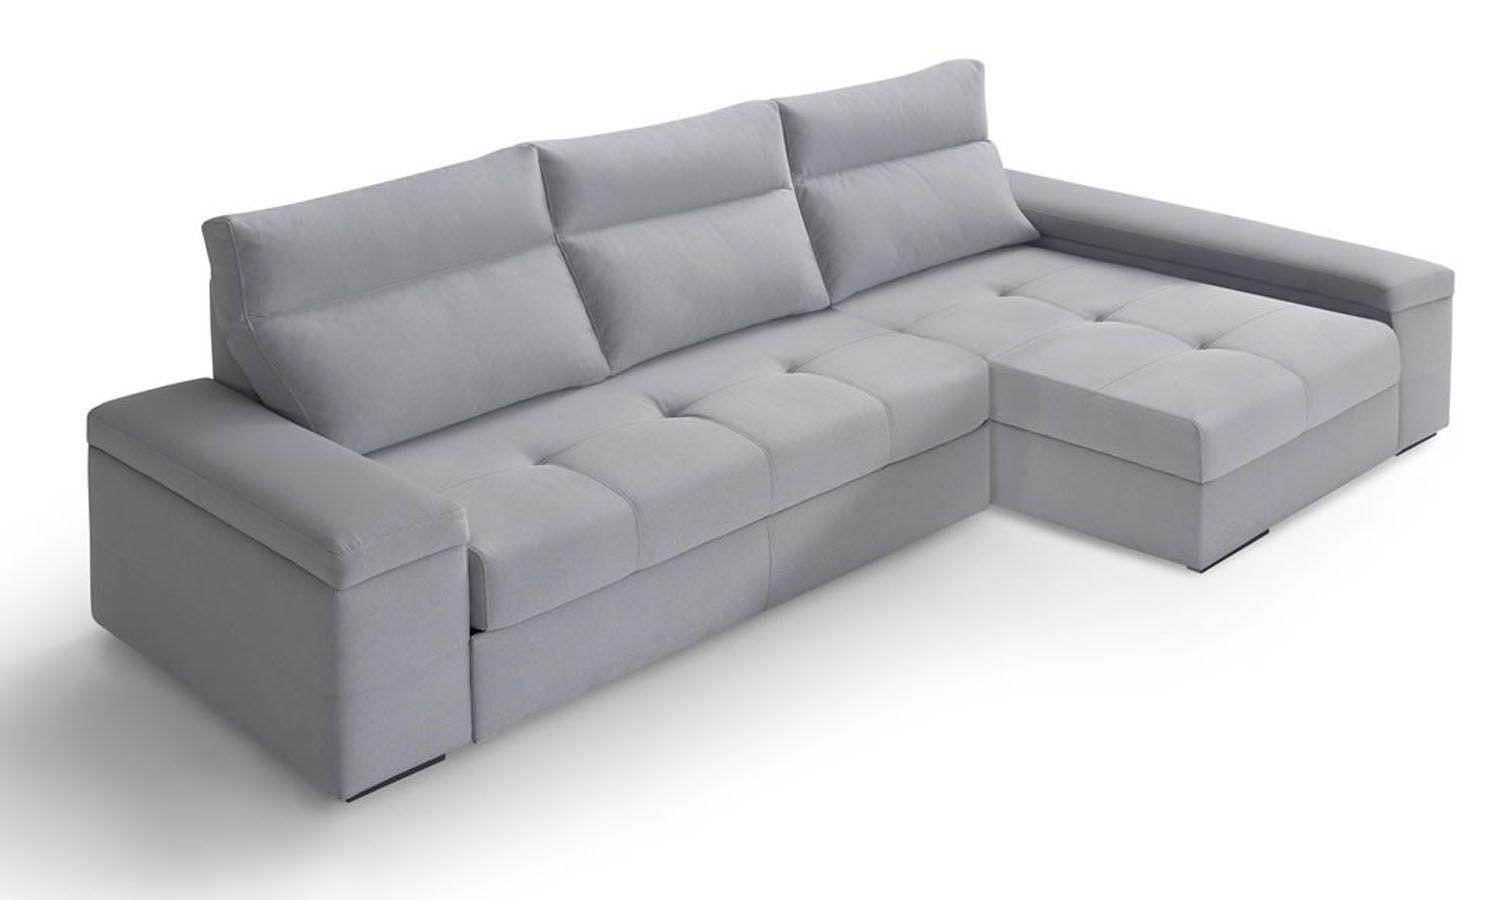 Sofa Cama Chaise Longue Gran sofá Cama Chaise Longue Of 48  Magnífica sofa Cama Chaise Longue